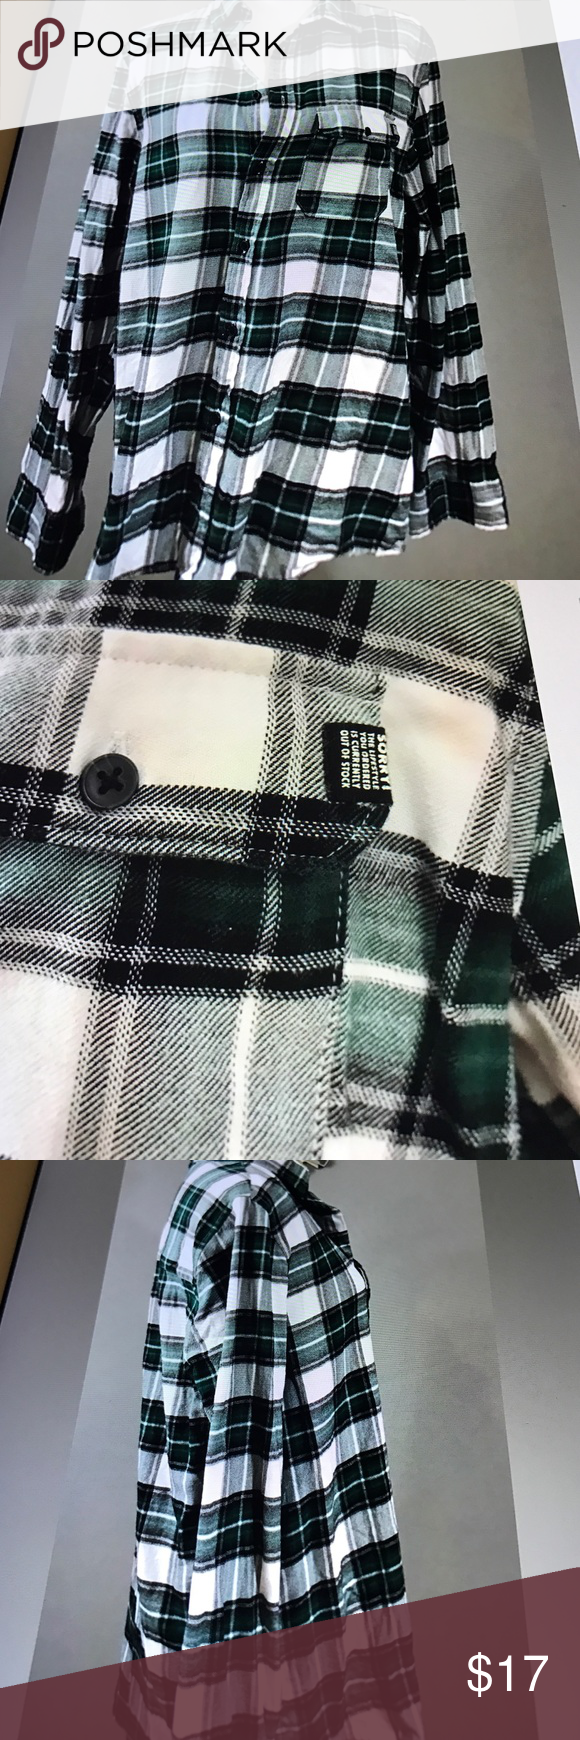 H&M Divided Plaid women's shirt medium new H&M women's Plaid shirt green and black medium shirt is oversized 30 inches long 19 across chest new without tags H&M Tops Button Down Shirts